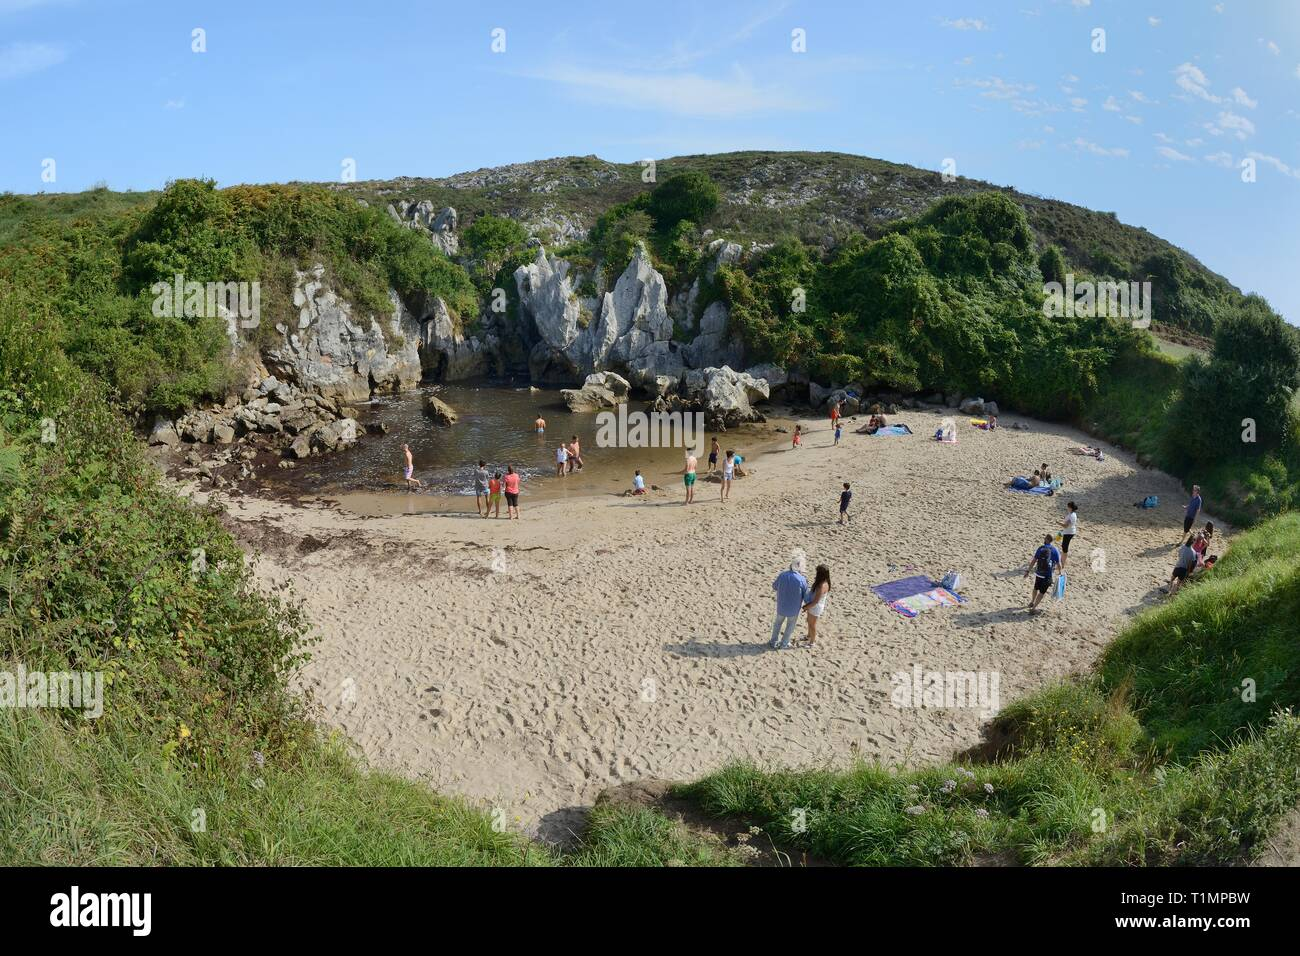 Gulpiyuri beach, an inland beach connected to the coast 100m away by seawater flowing through eroded channels in limestone rock, Naves, Asturias, Spai - Stock Image